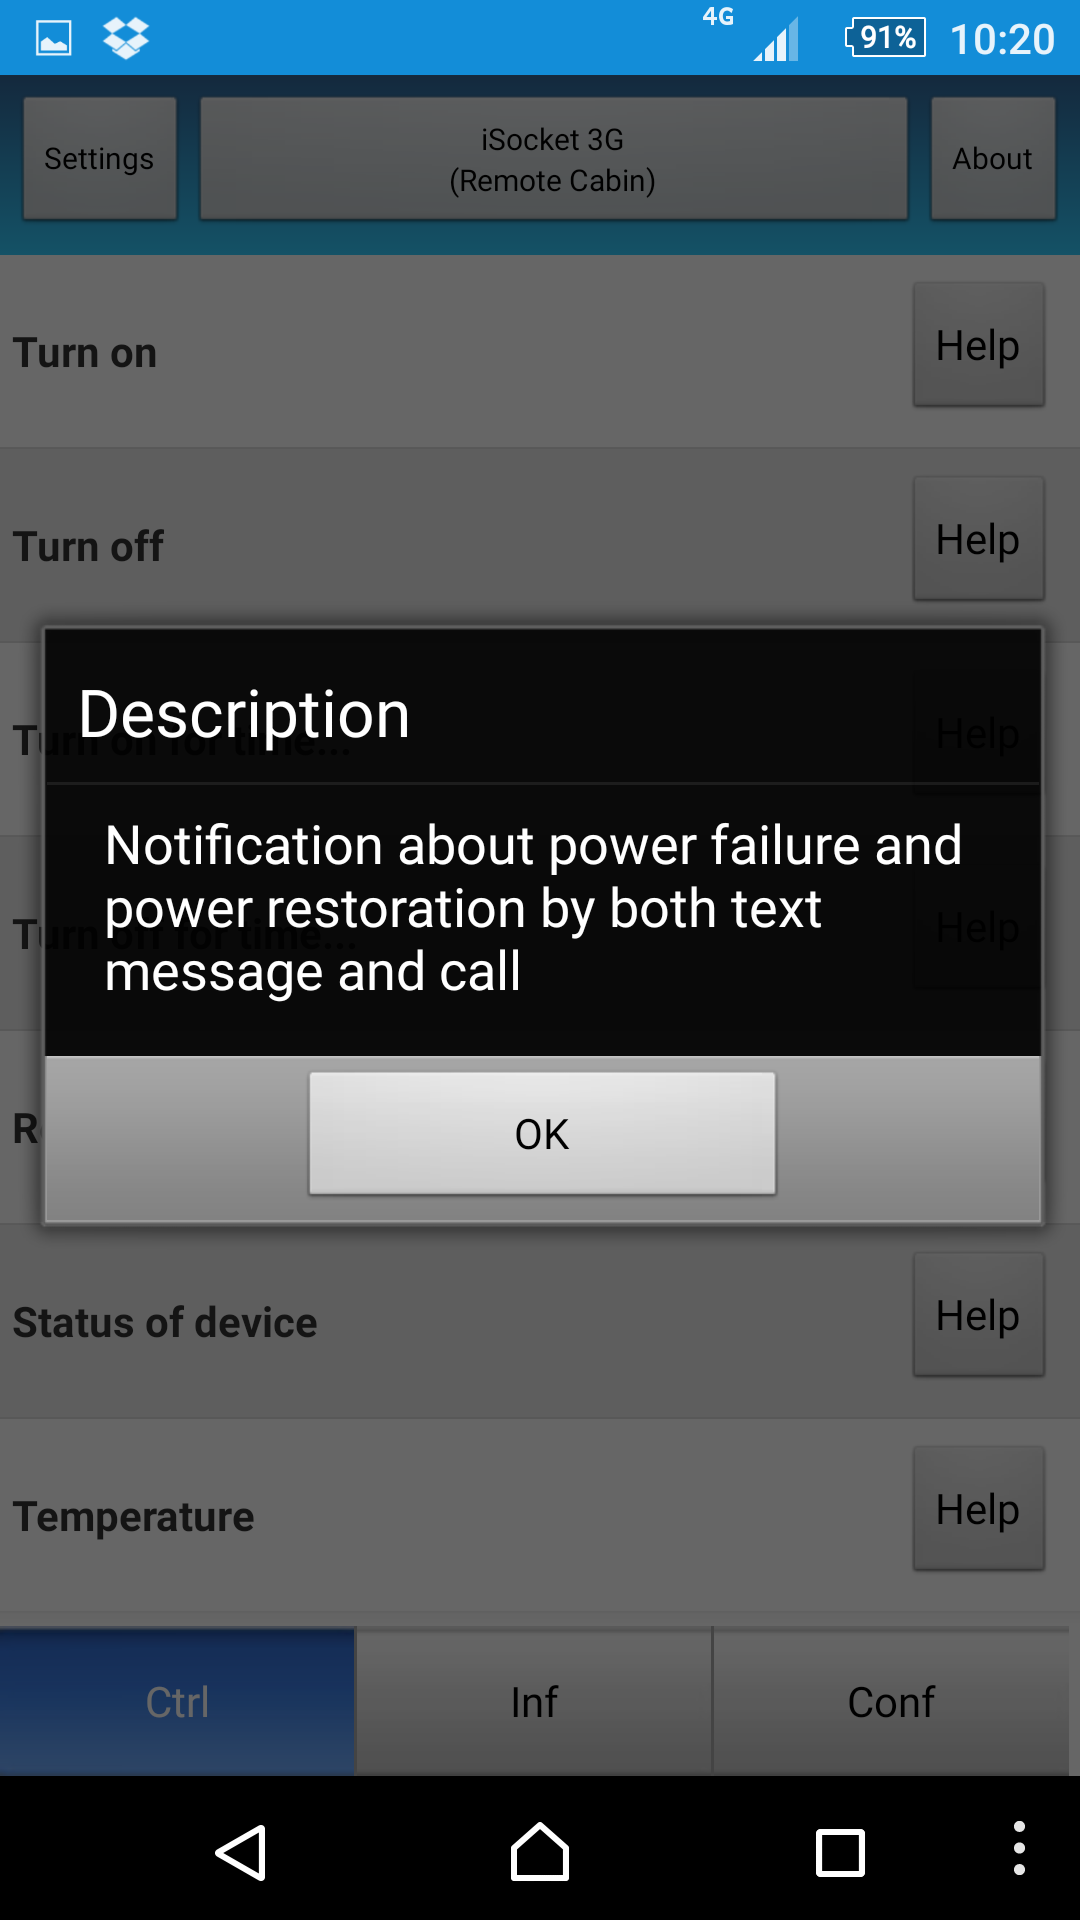 Help about power outage and power restore settings